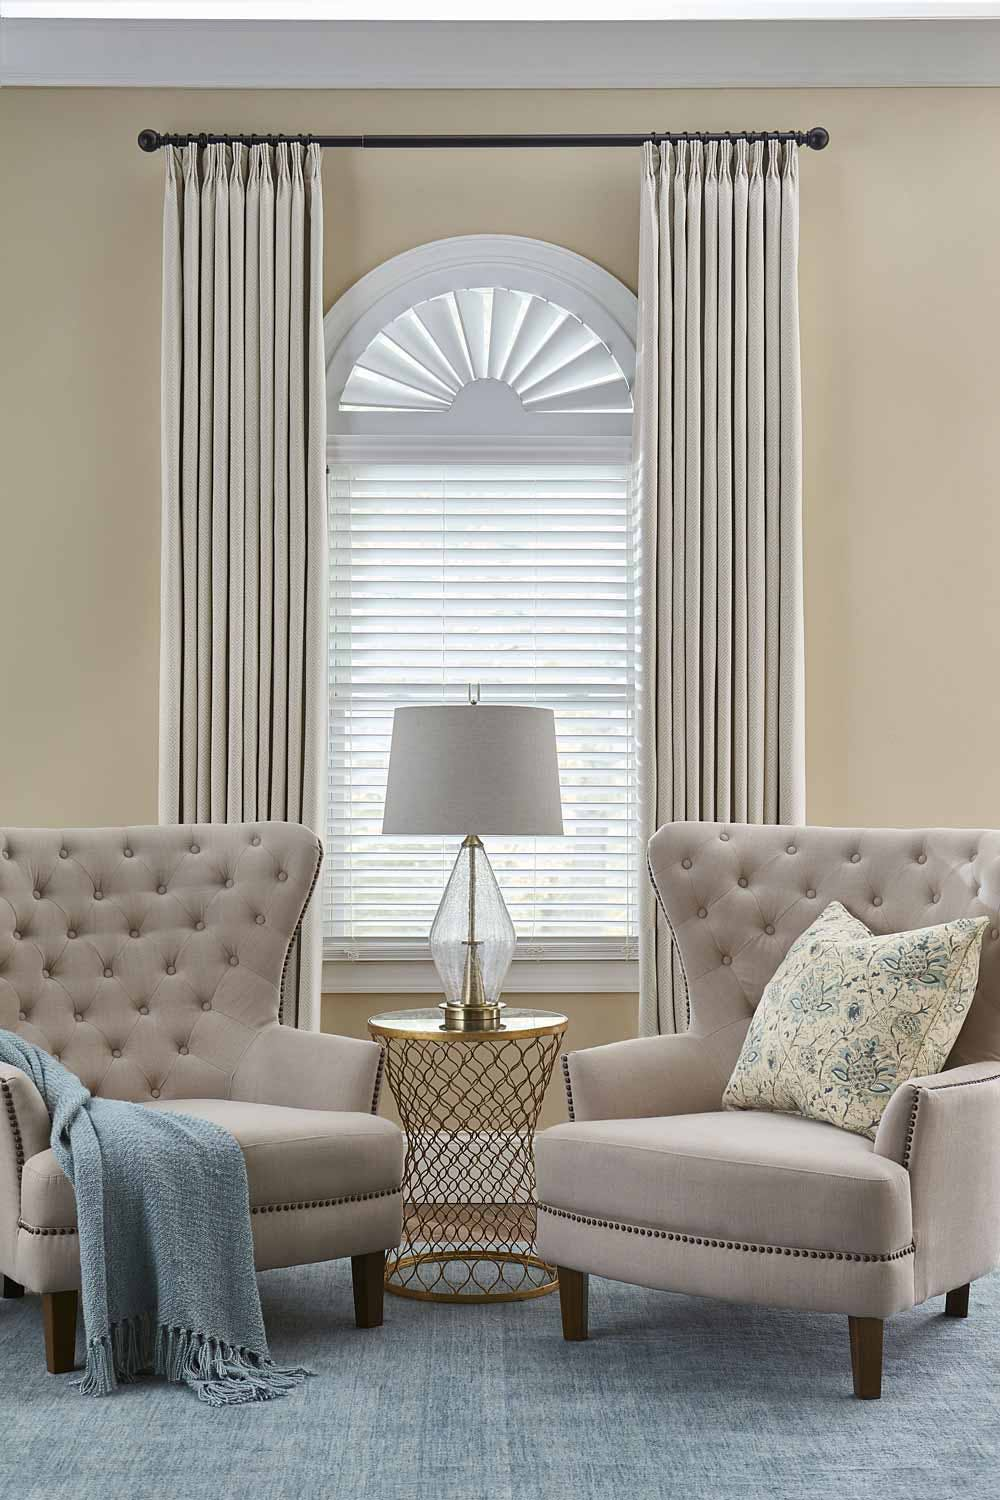 arched window with blinds and curtains